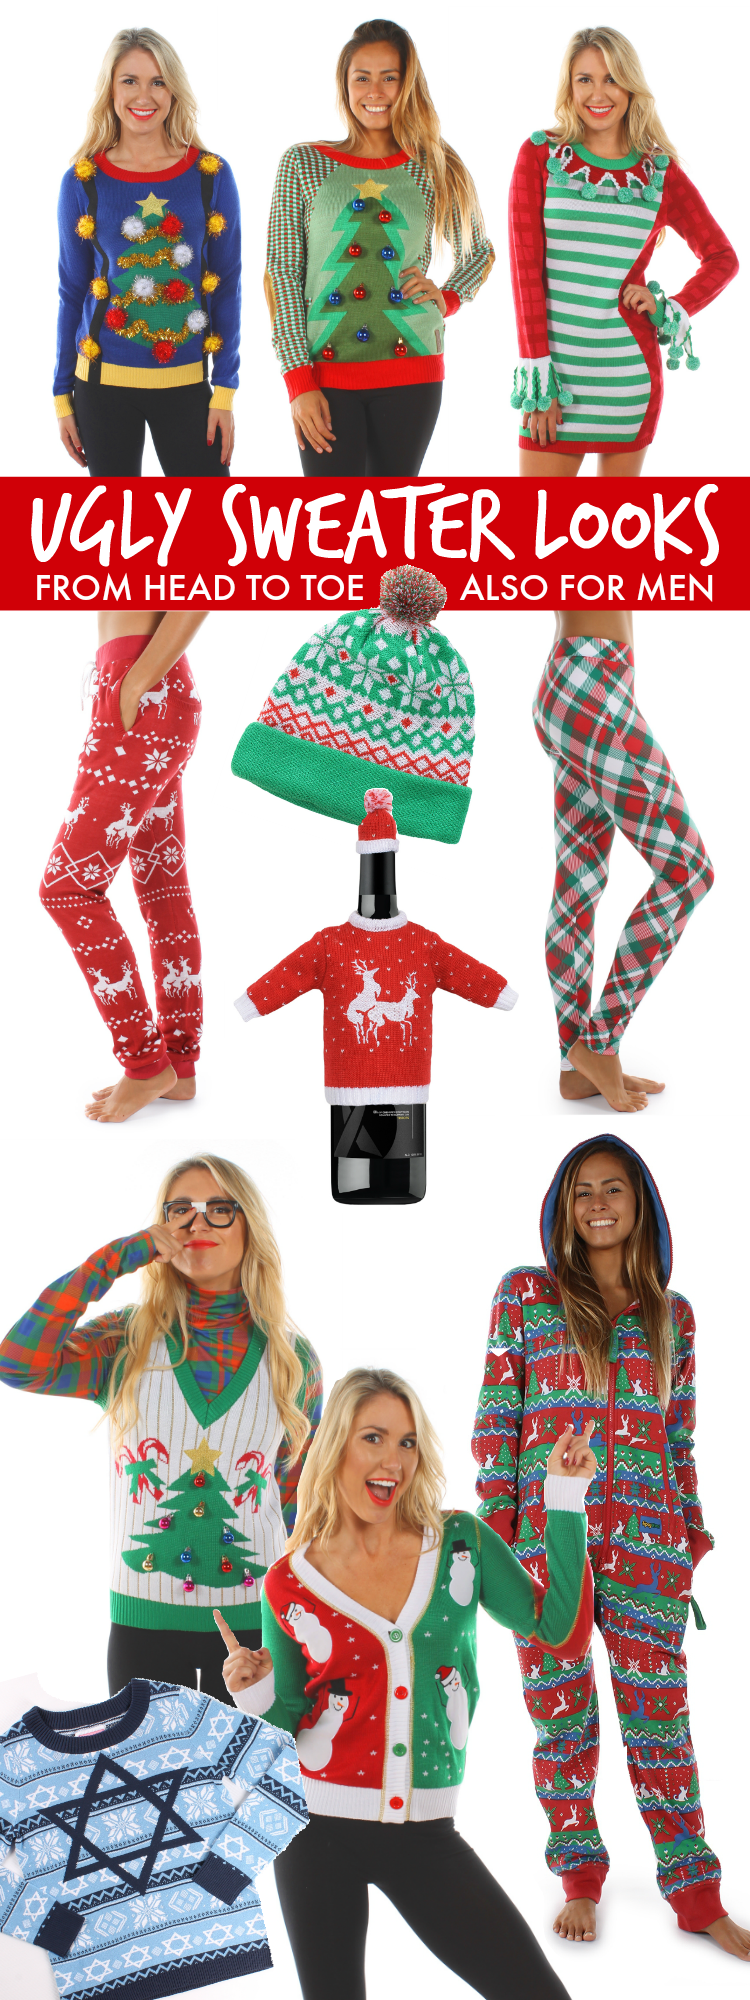 fc9d06ddc52 50 Ugly Christmas Sweater Party Ideas - Oh My Creative